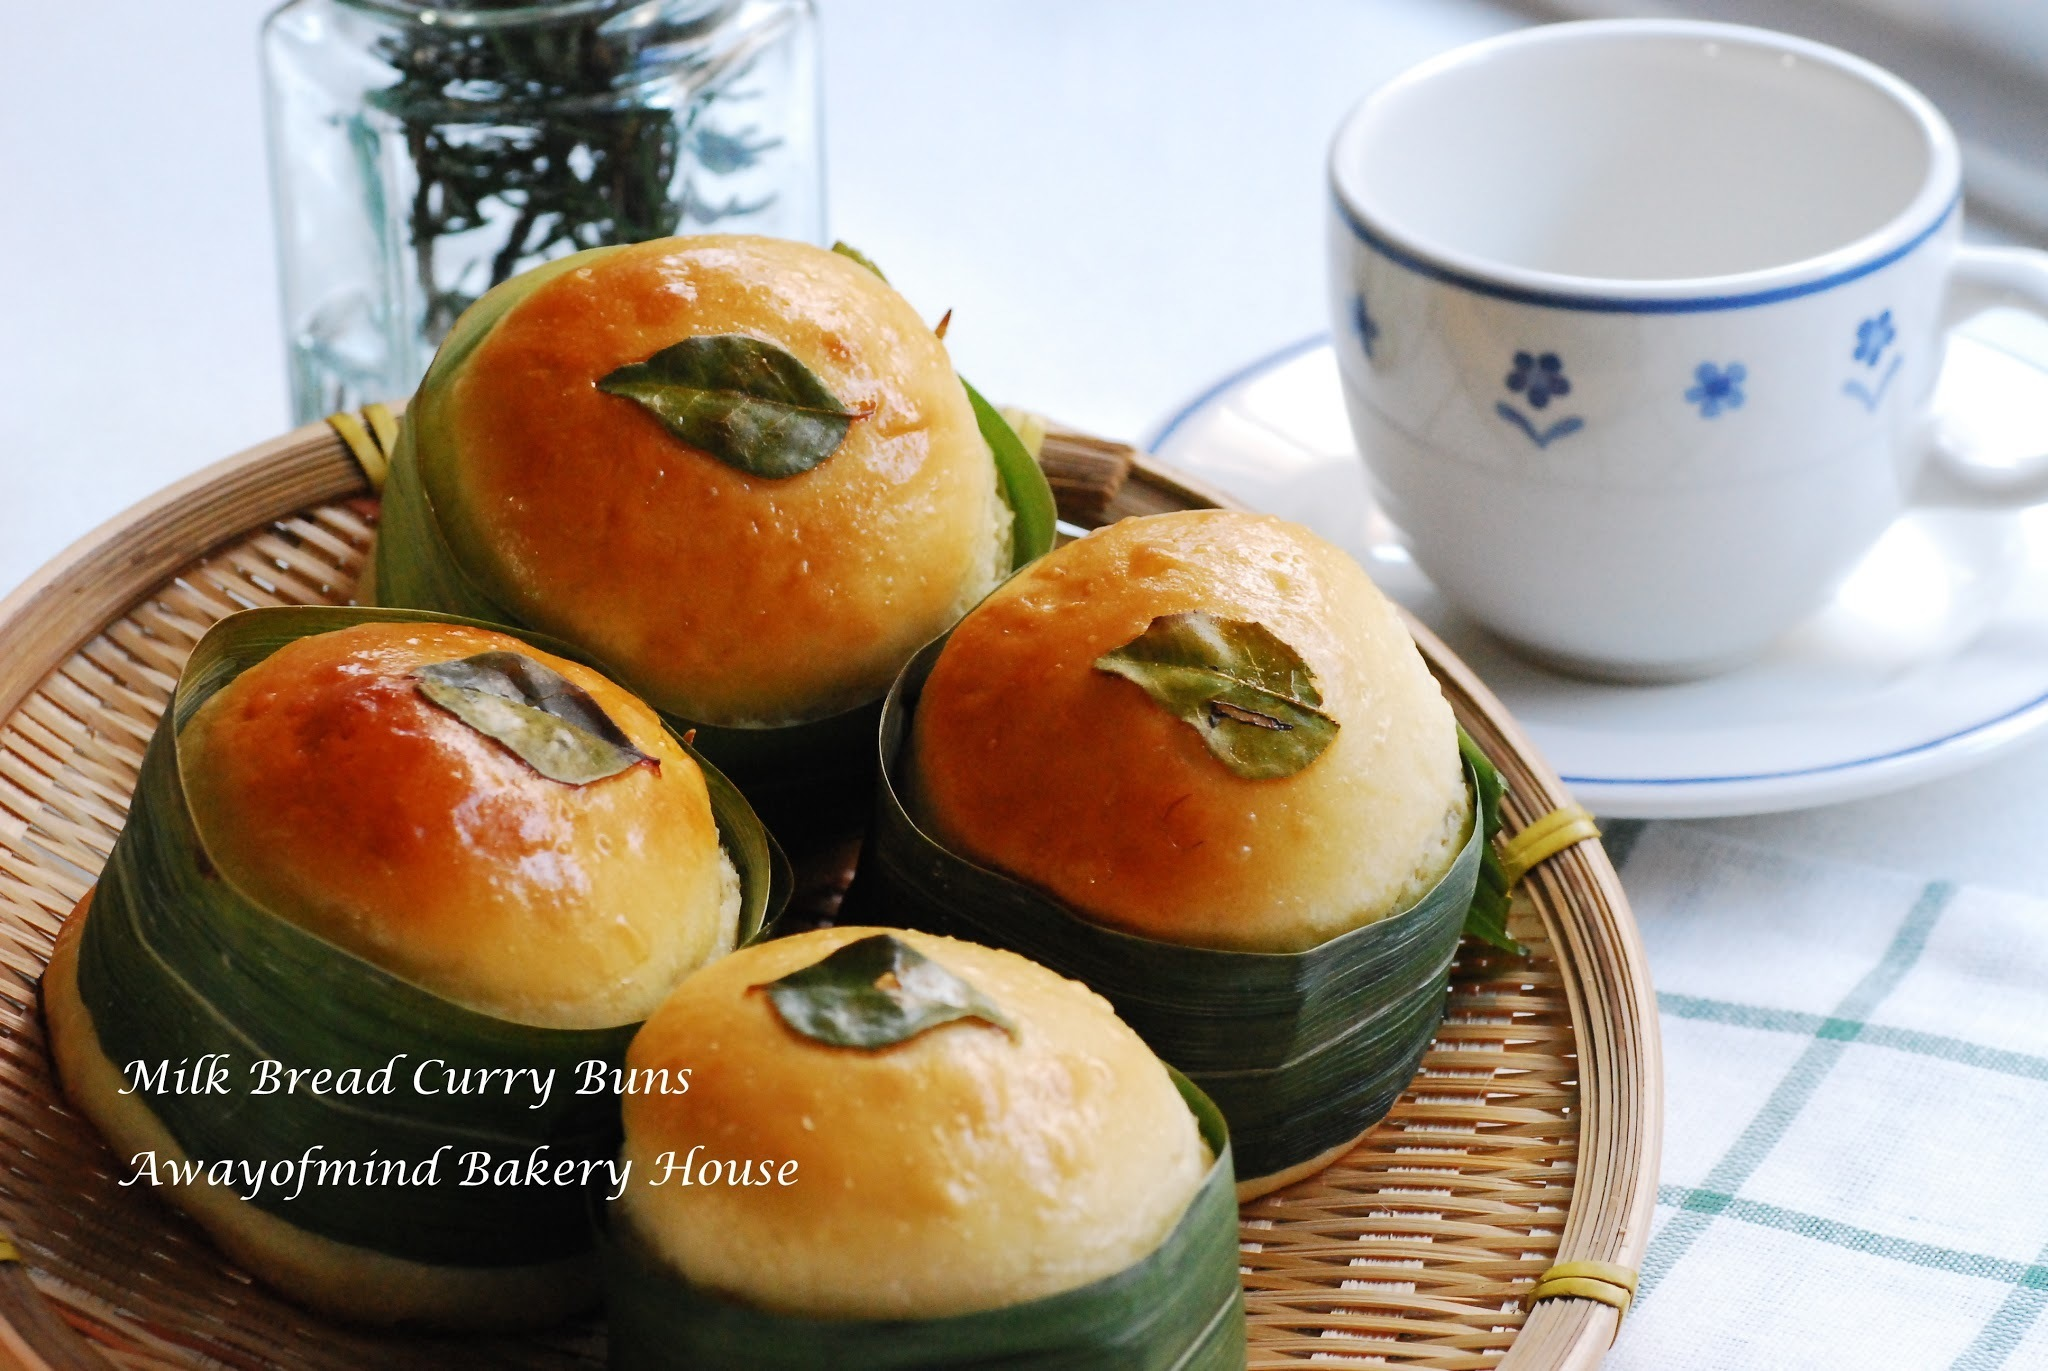 Milk Bread Curry Buns 柔软咖哩面包 (65C Tangzhong Method)